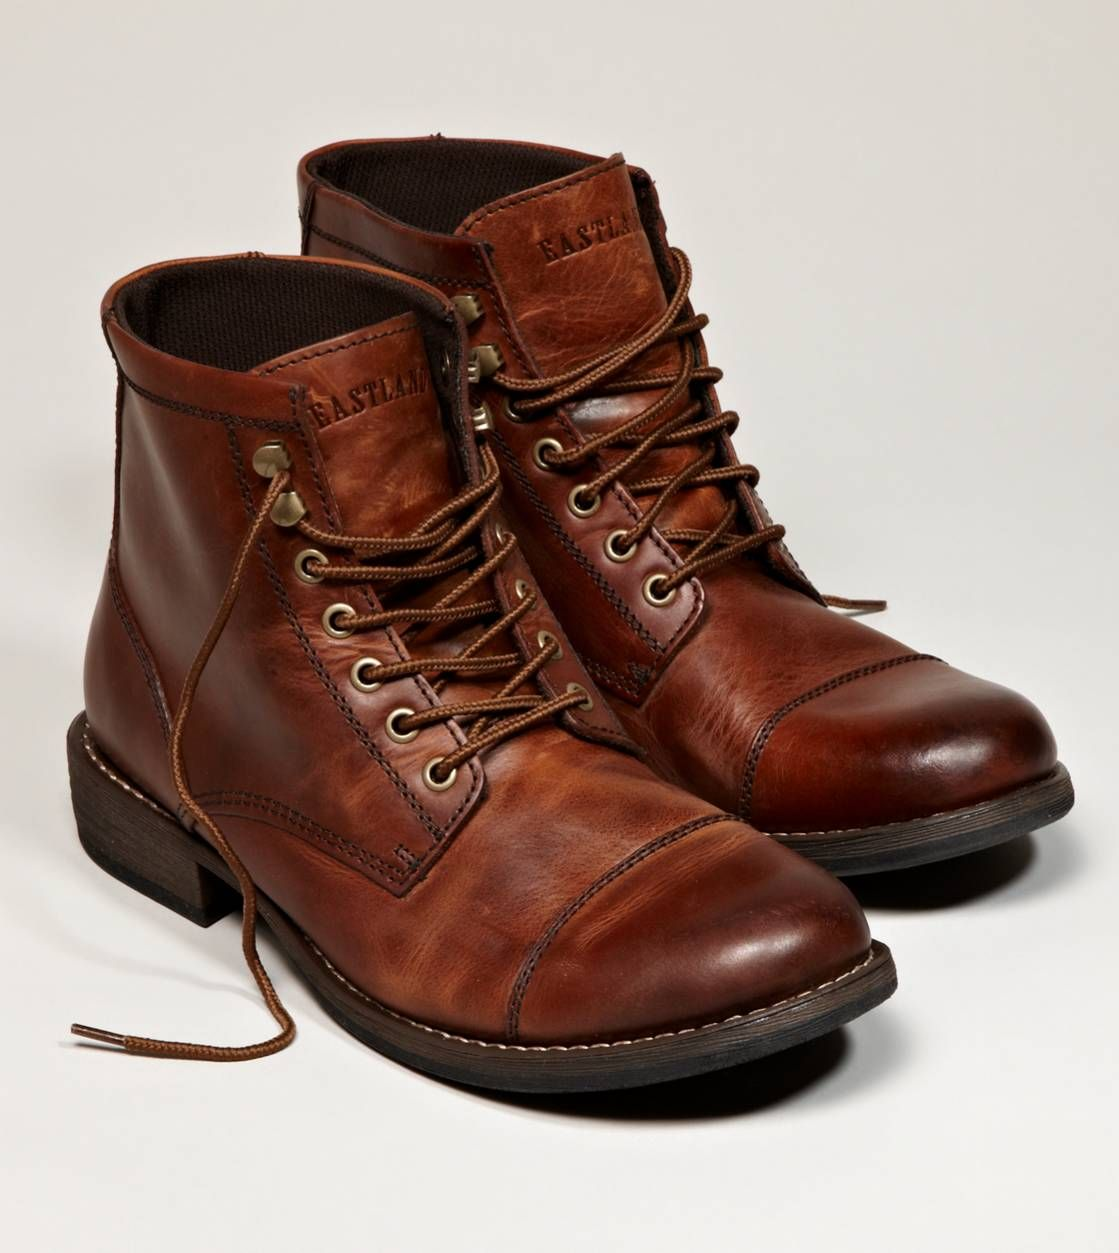 3ac78e1934d Eastland High Fidelity Cap Toe Boot / these are men's boots but I ...